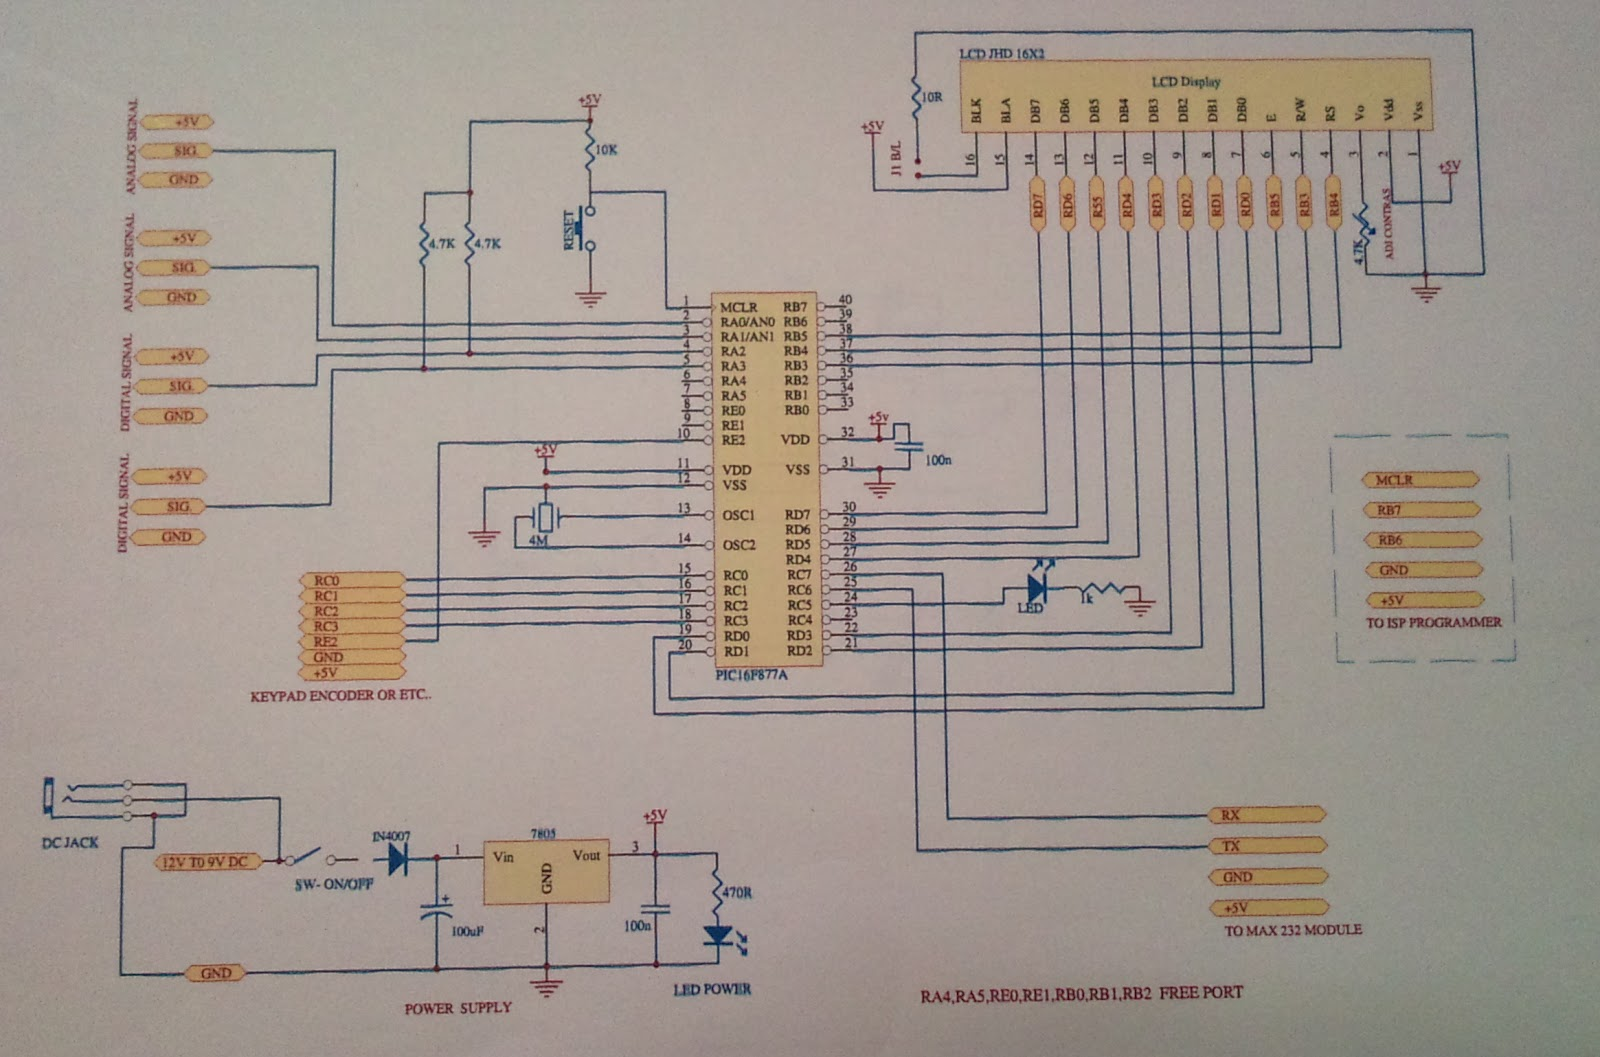 Final Year Project Home Patient Monitor Fyp Week 2 Technical Expresspcb Schematic And Pcb Design Software New Version Figure 3pic Mainboard Diagram